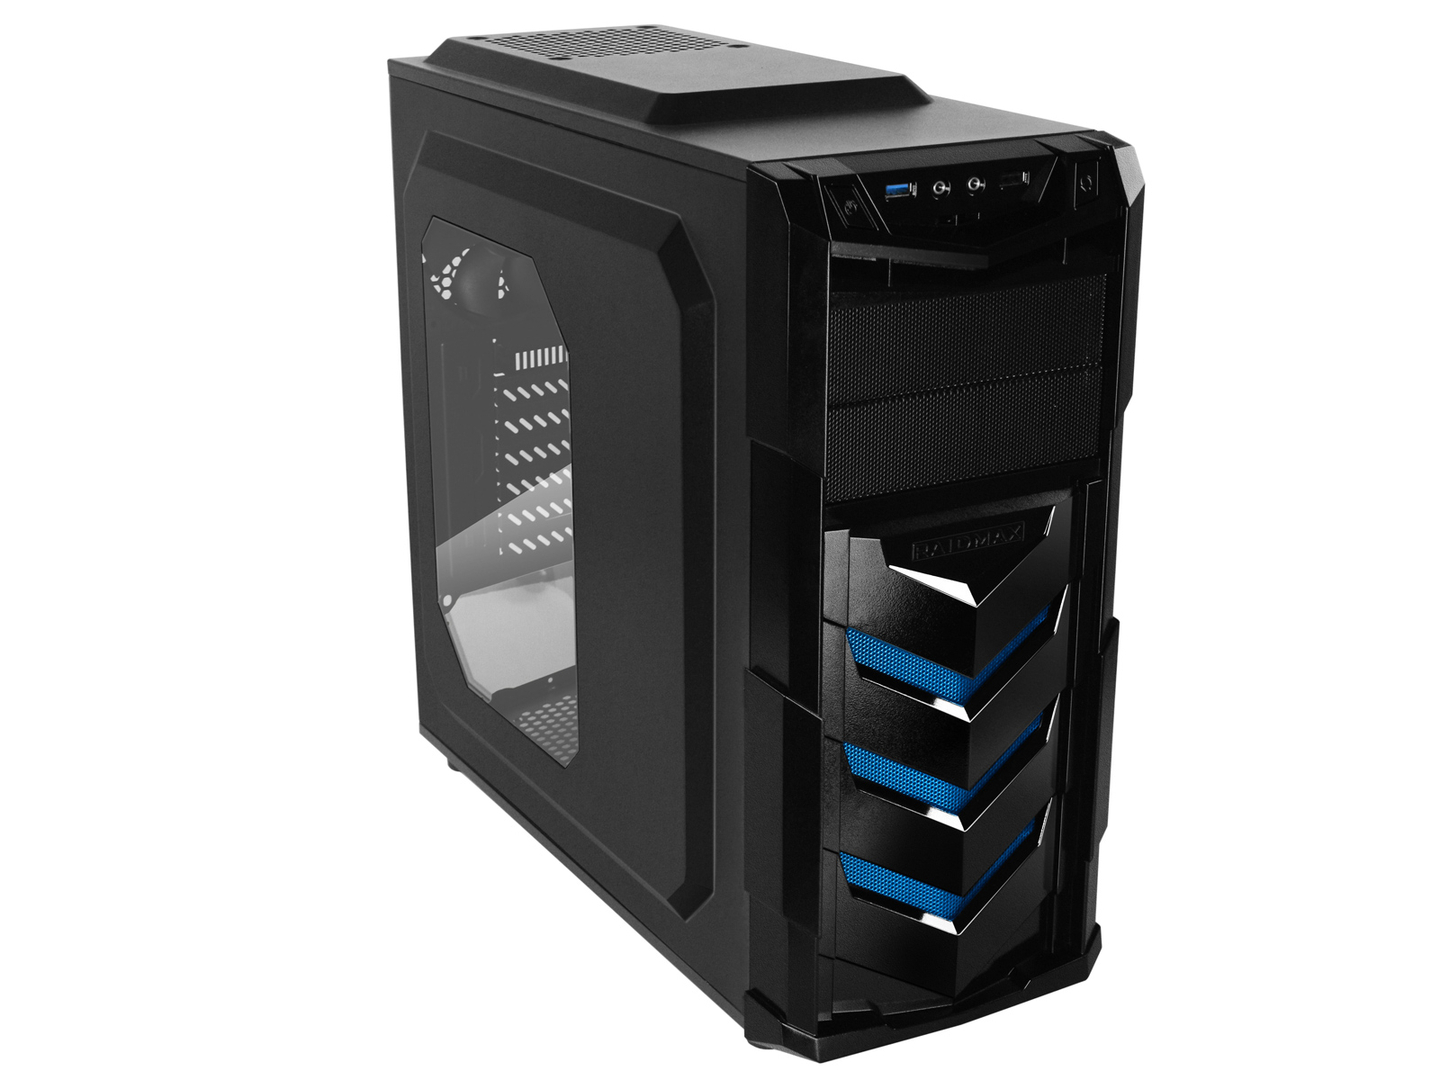 torre gamer cpu pc nuevo amd twelve threads r7 1700 gtx 1050 gddr5 memoria ram 4gb ddr4 blindada board msi b350 disco duro 2tb 2000gb juegos gamer chasis case atx